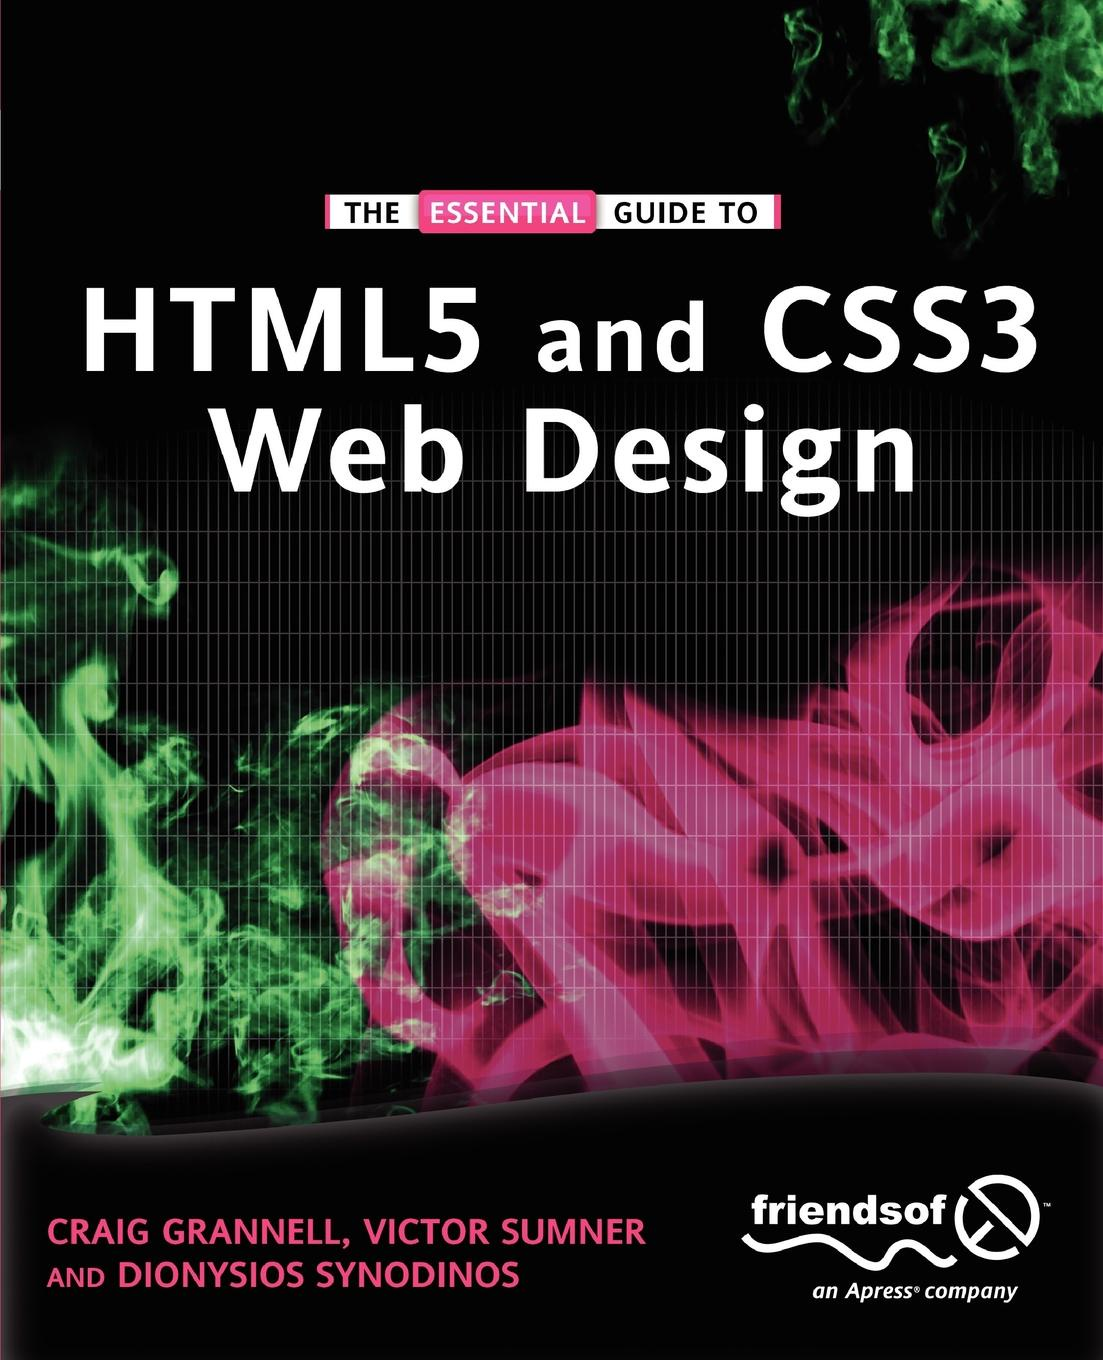 Craig Grannell, Victor Sumner, Dionysios Synodinos The Essential Guide to HTML5 and CSS3 Web Design leslie sikos web standards mastering html5 css3 and xml